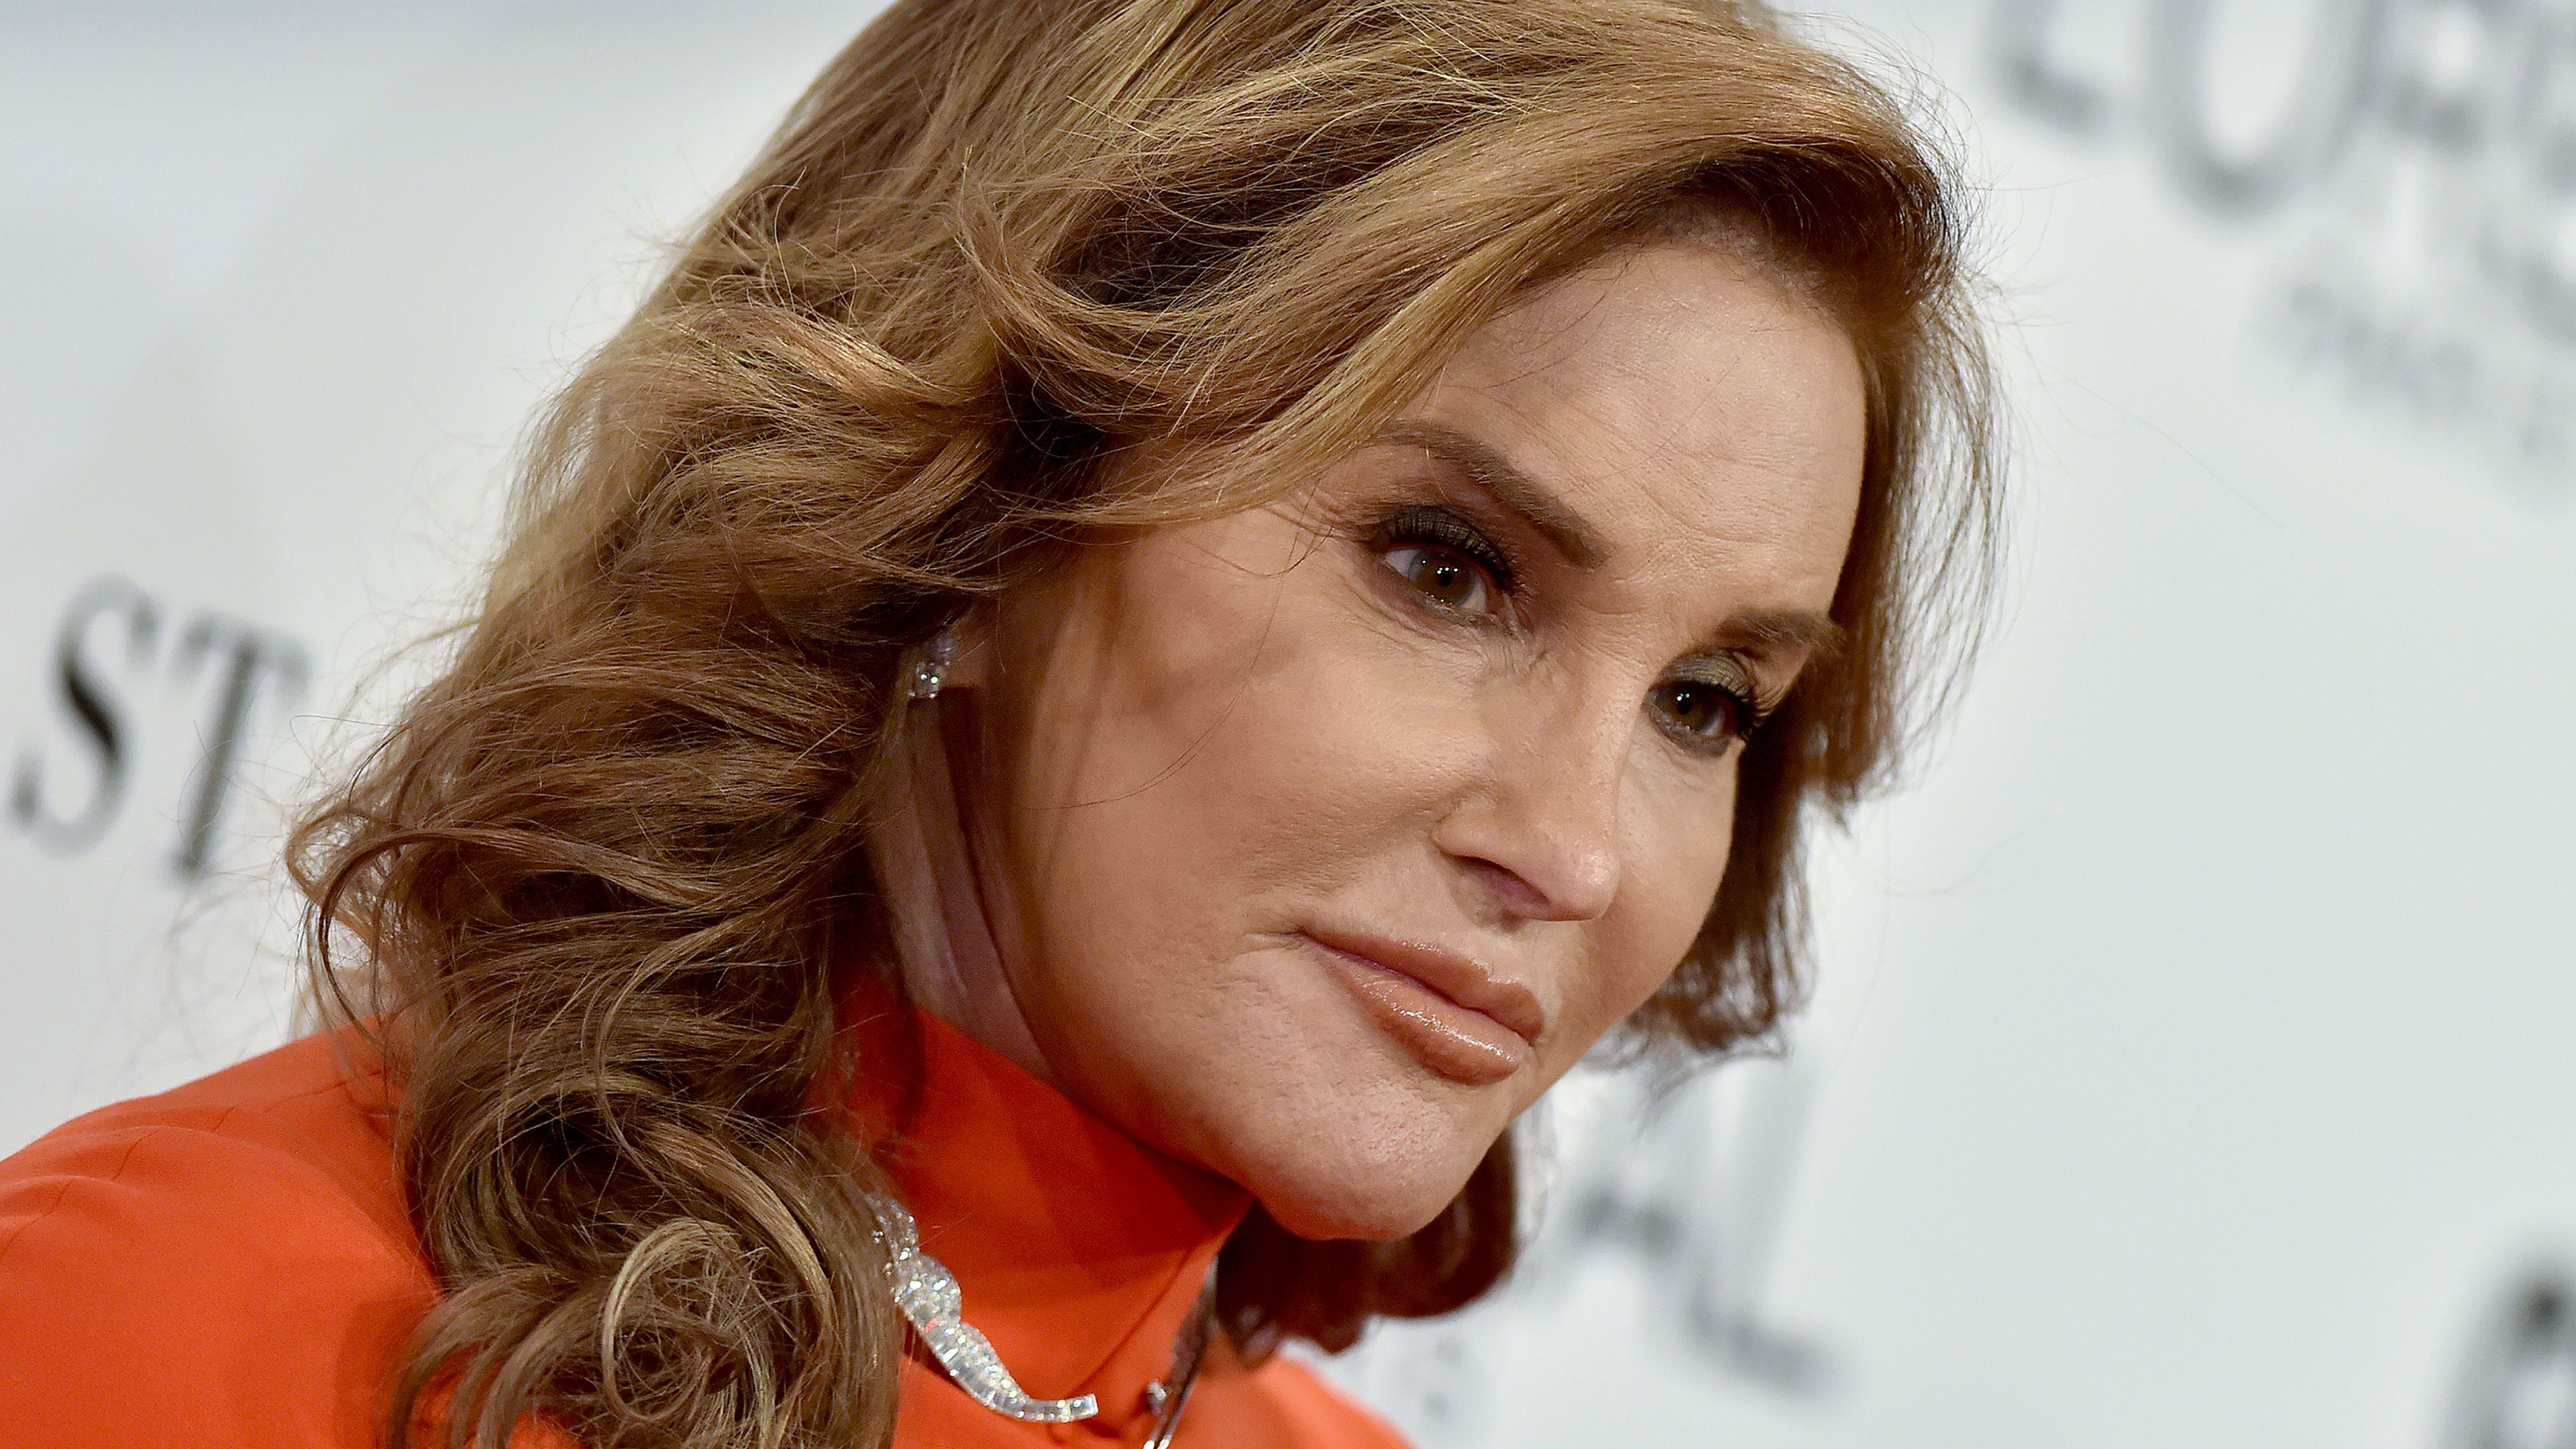 Caitlyn Jenner is changing the face of beauty